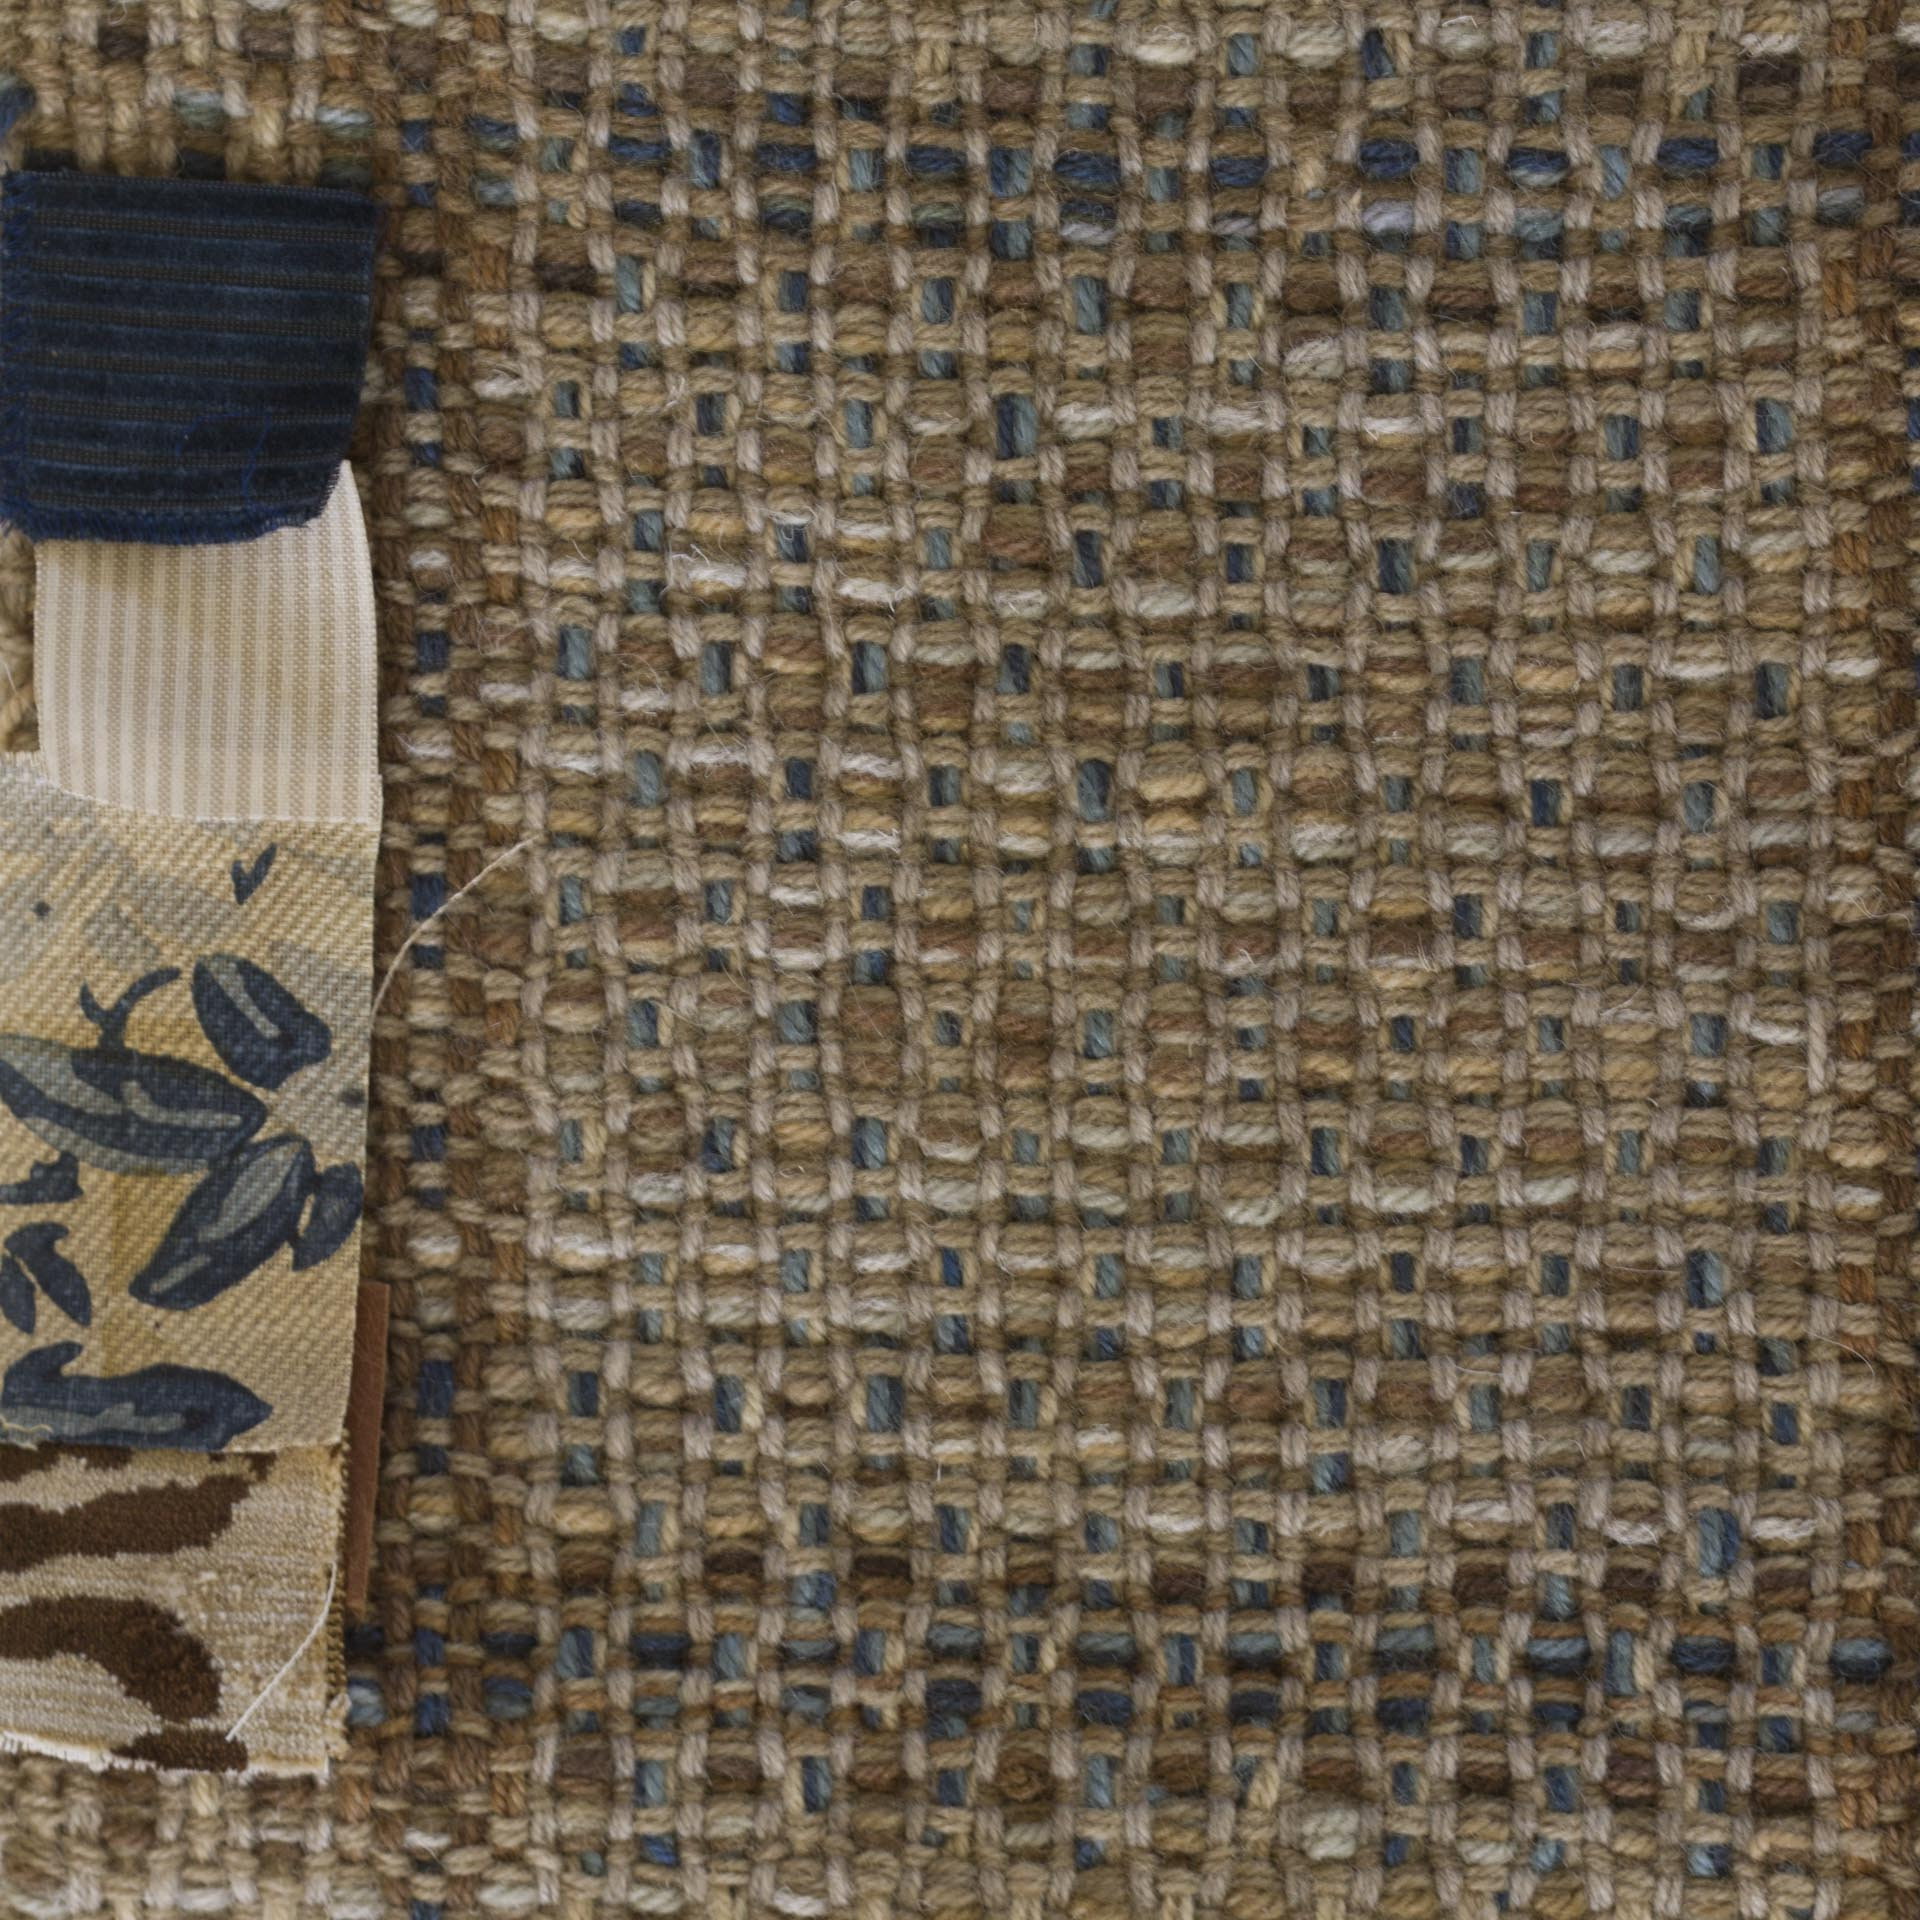 Montagne Handwoven woven strike-off with fabric swatches provided by the client